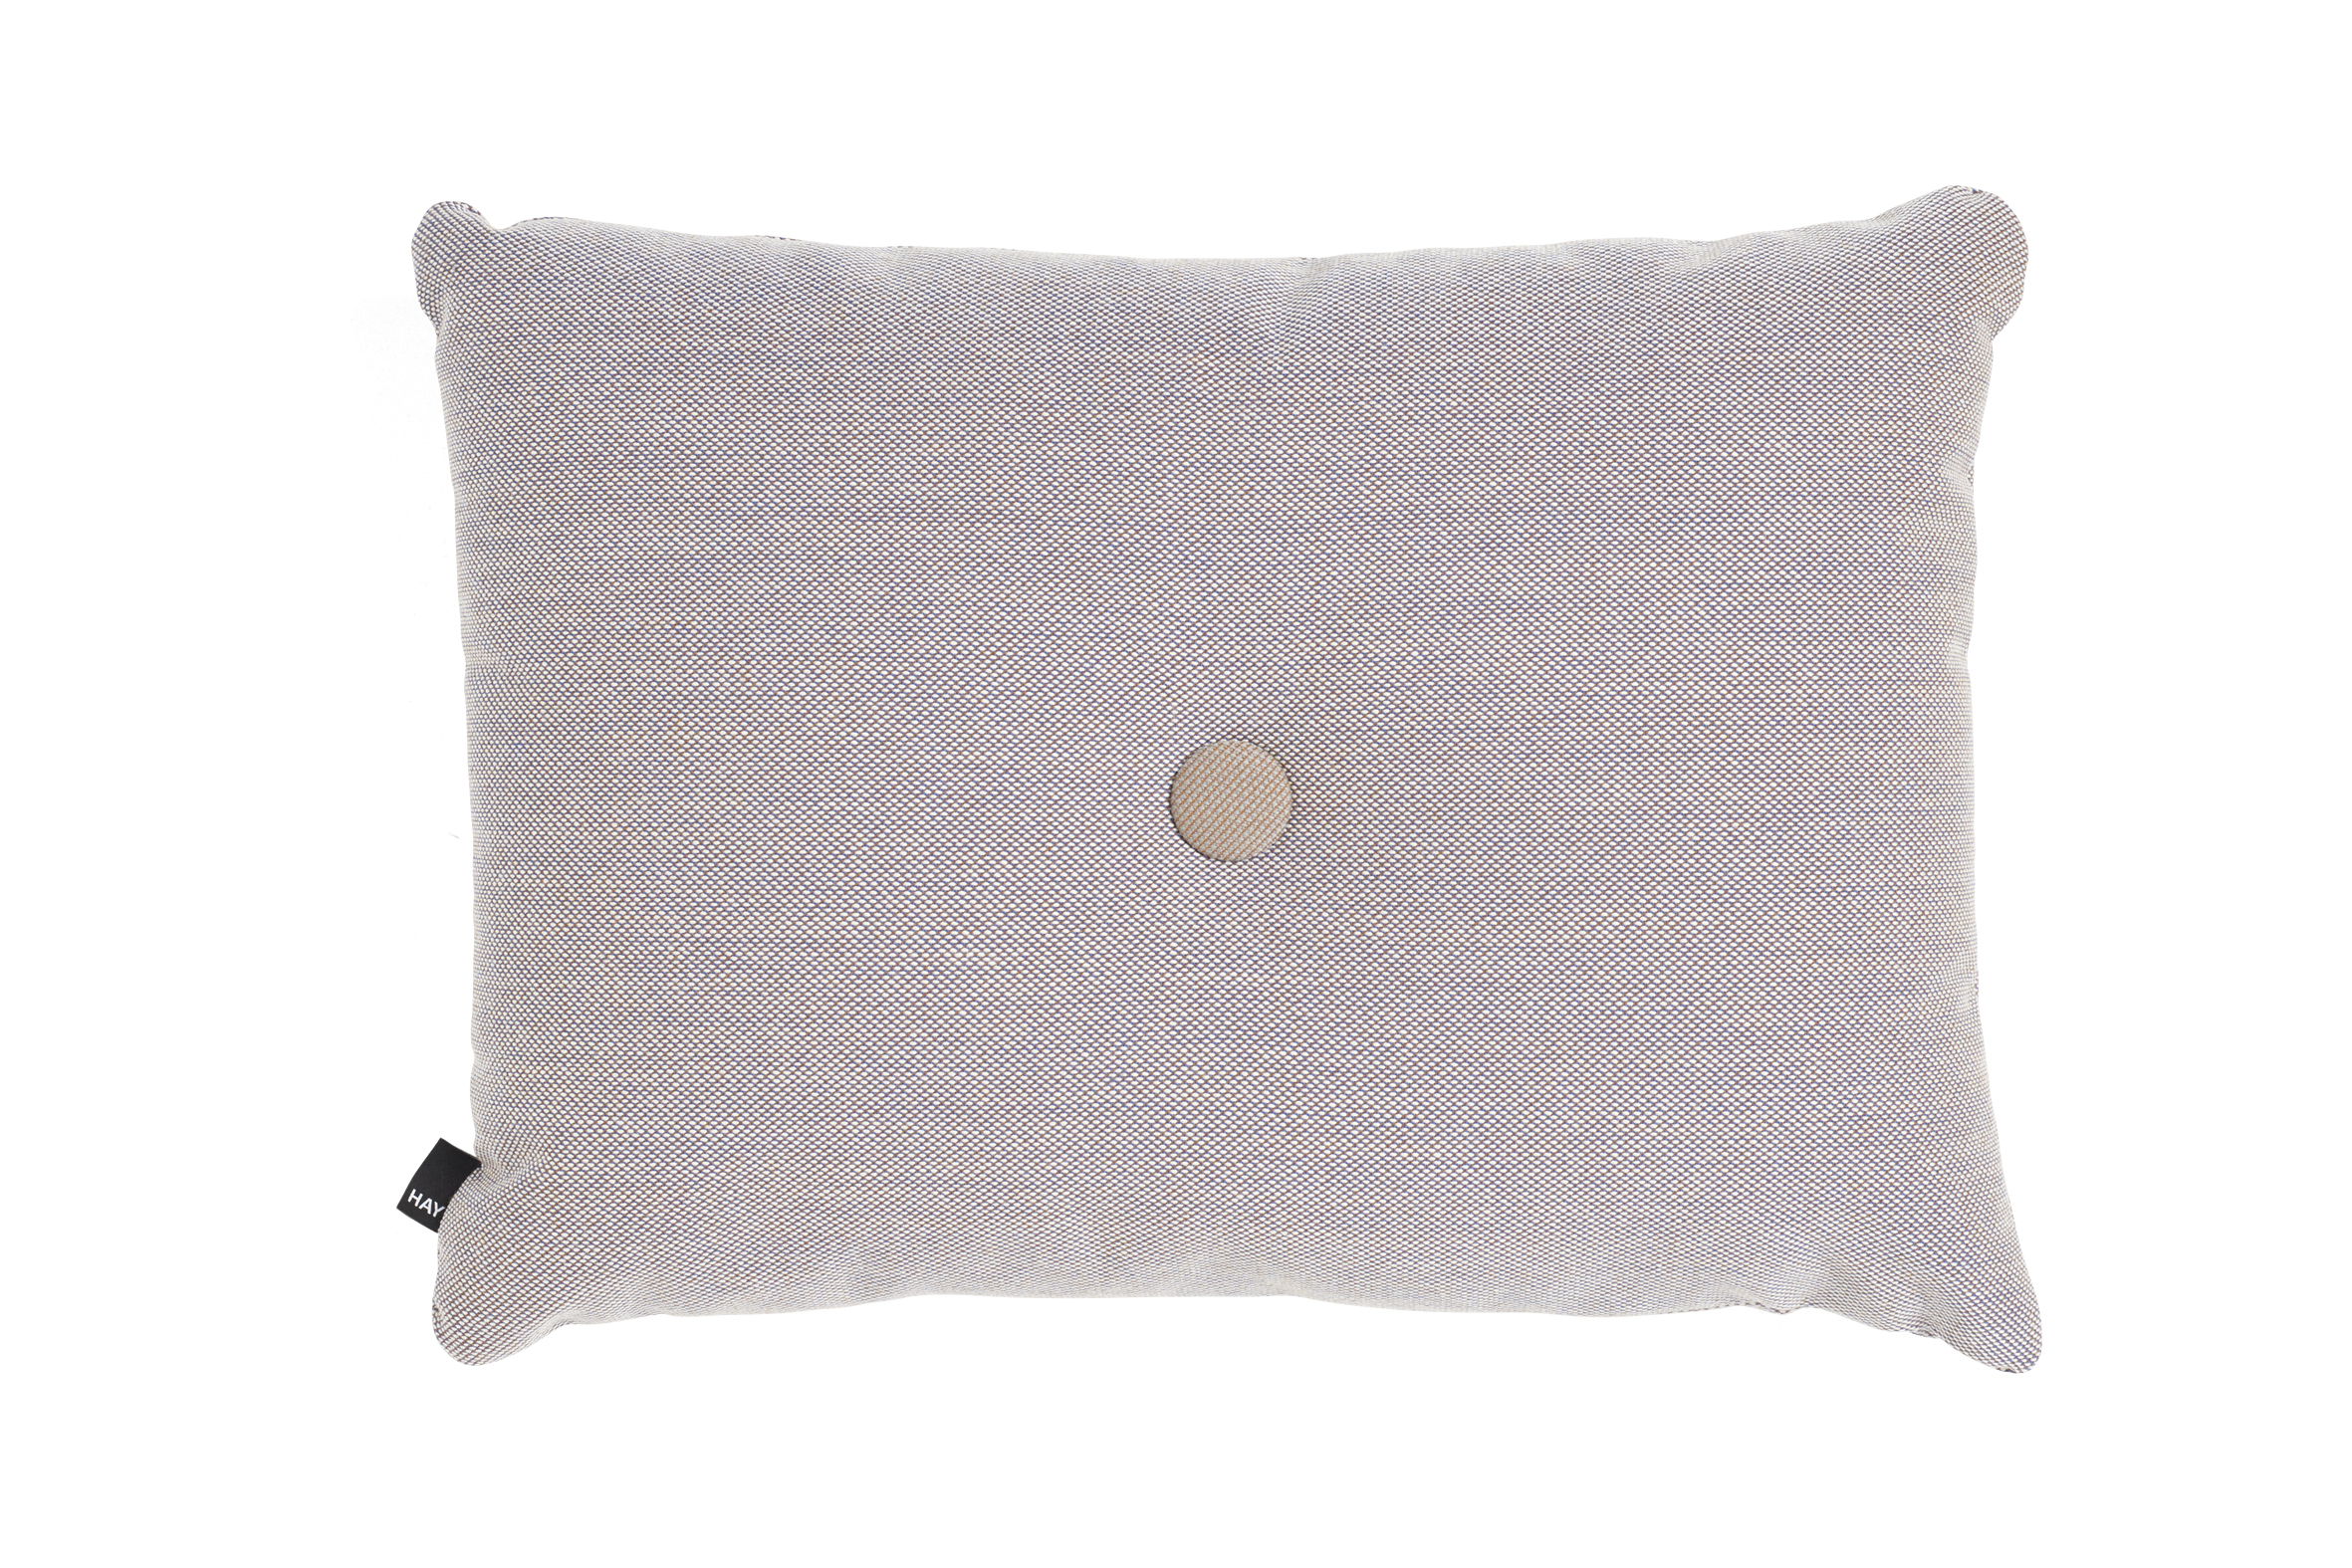 507021_Dot Cushion ST 1 dot soft lavender_WB